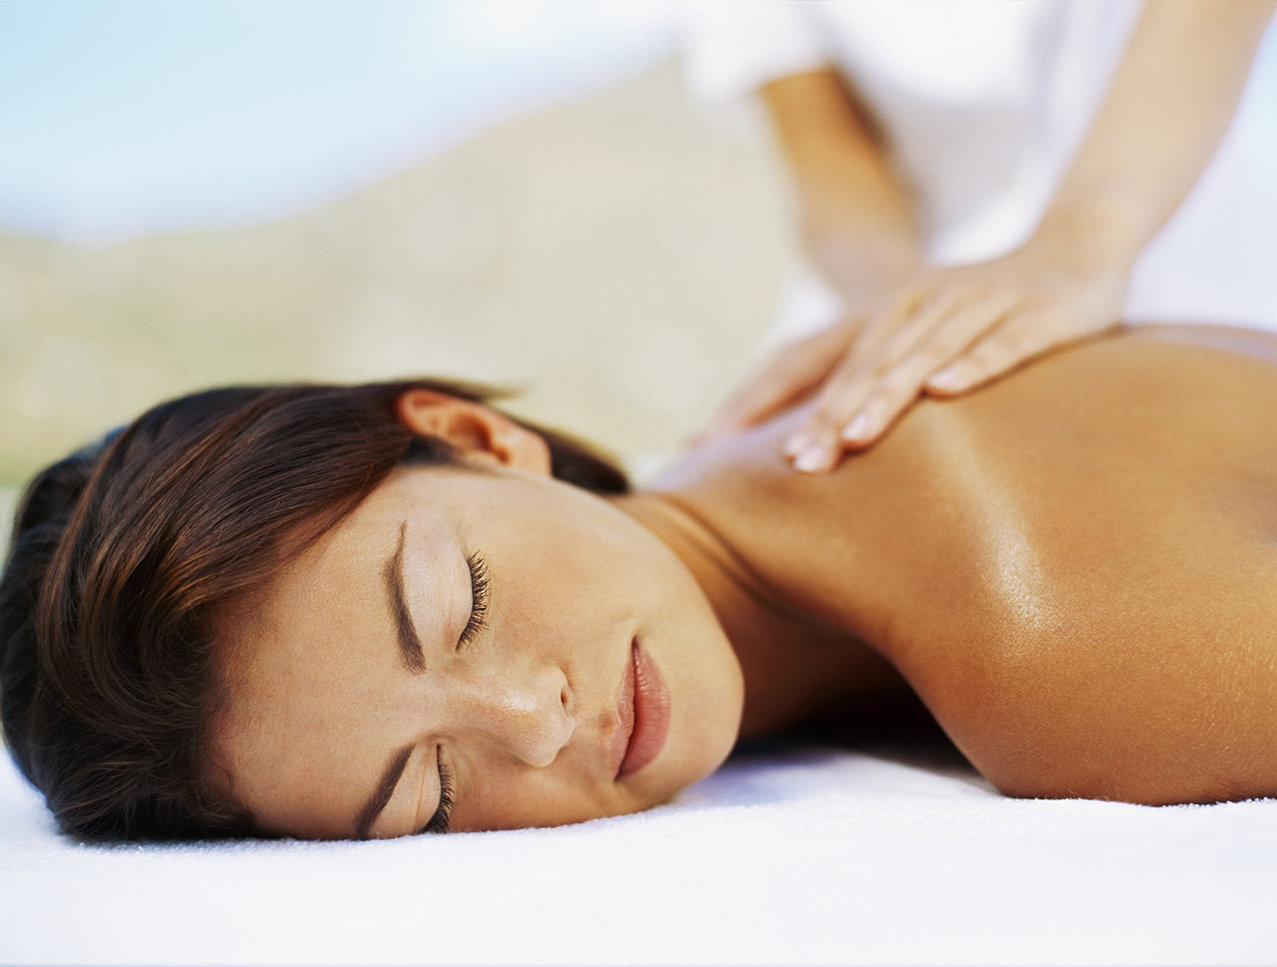 Jan Massage Massage treatment for low back pain and neck pain